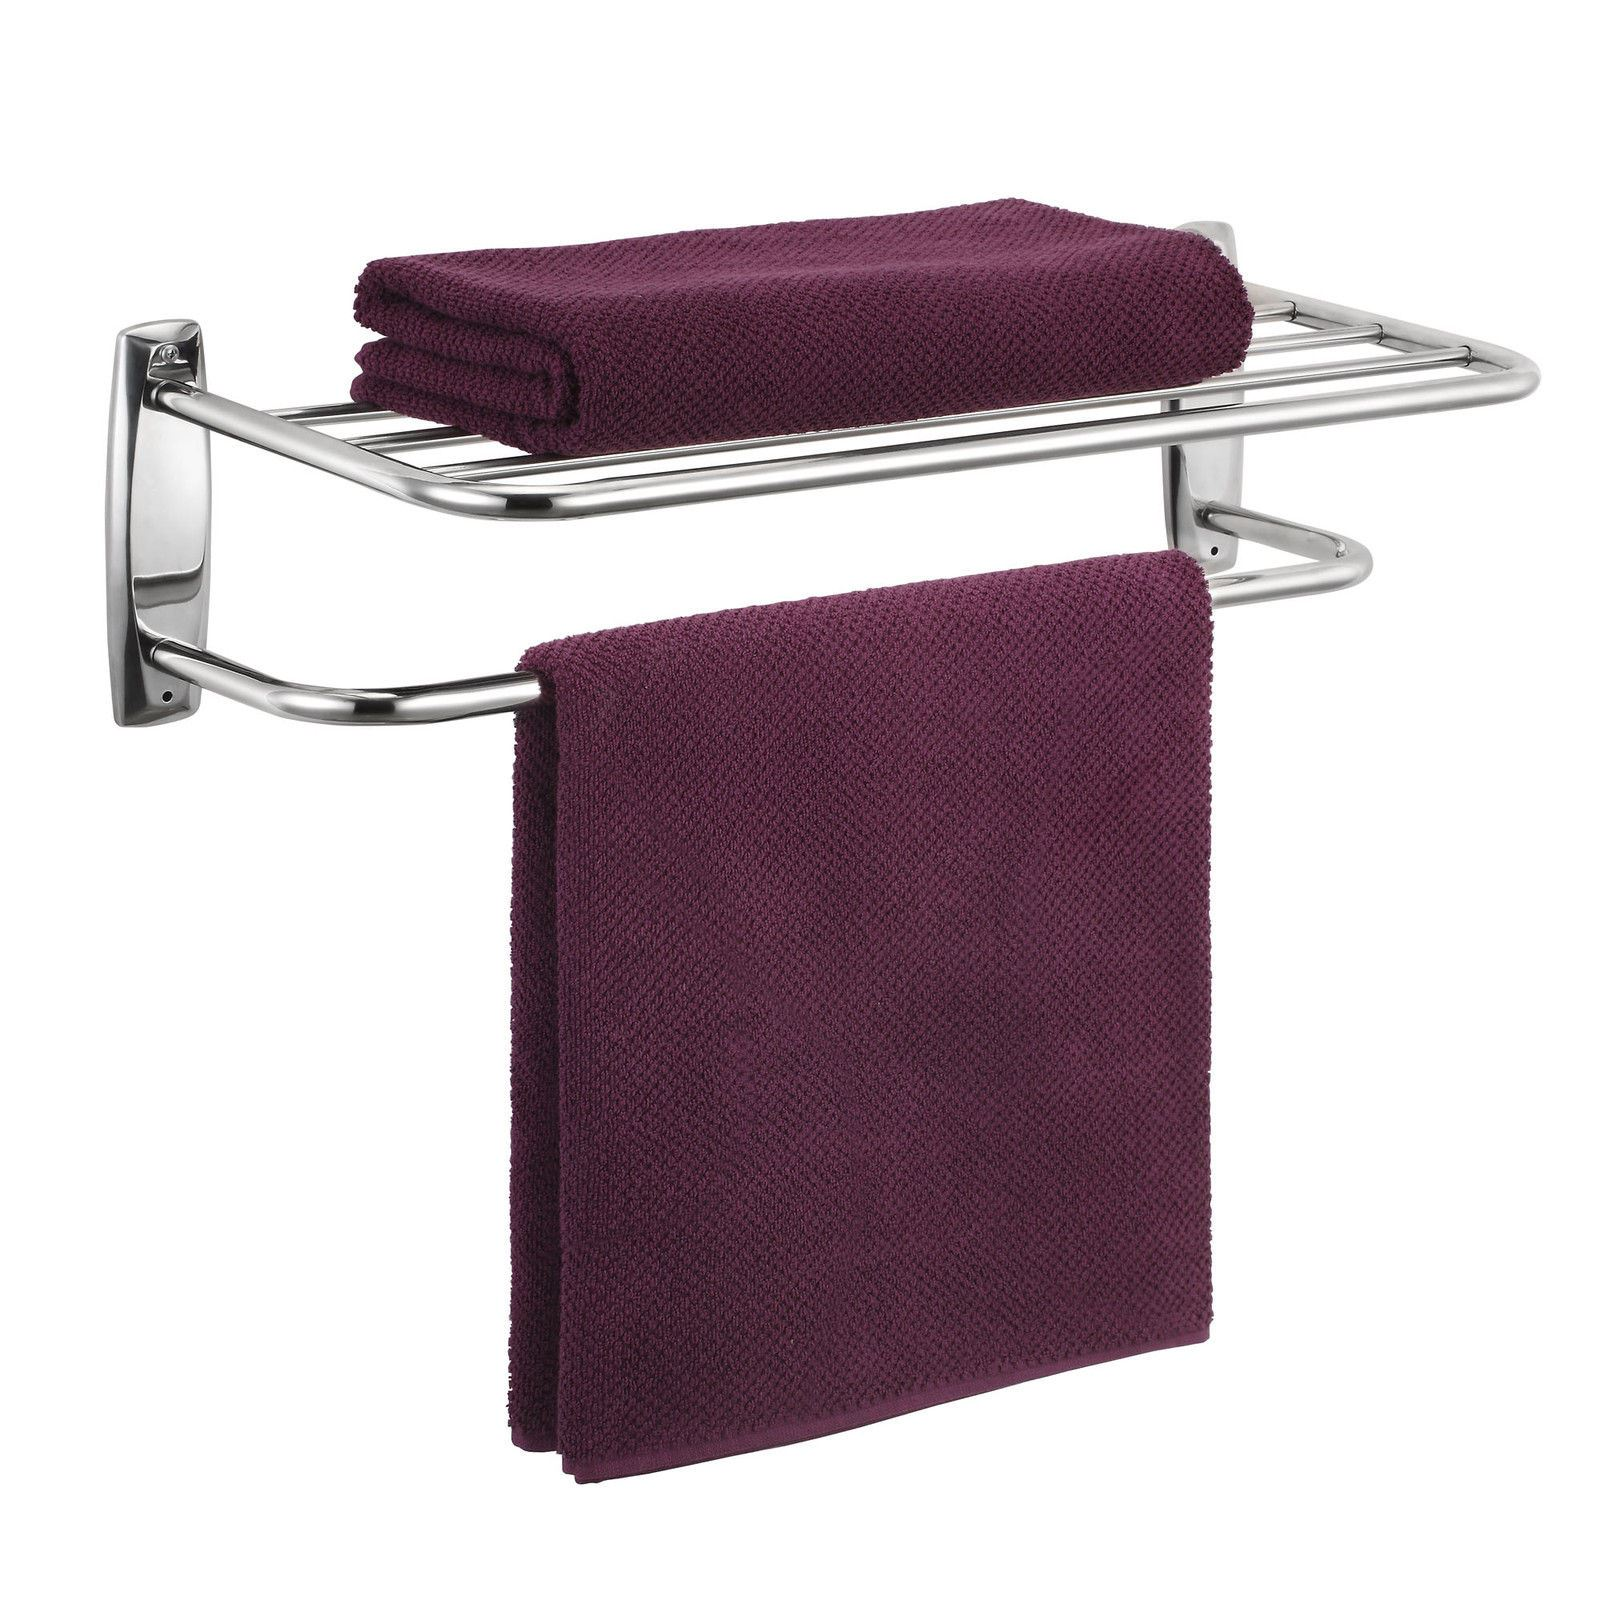 modern chrome quality bathroom shelf towel stand rack rails ebay. Black Bedroom Furniture Sets. Home Design Ideas